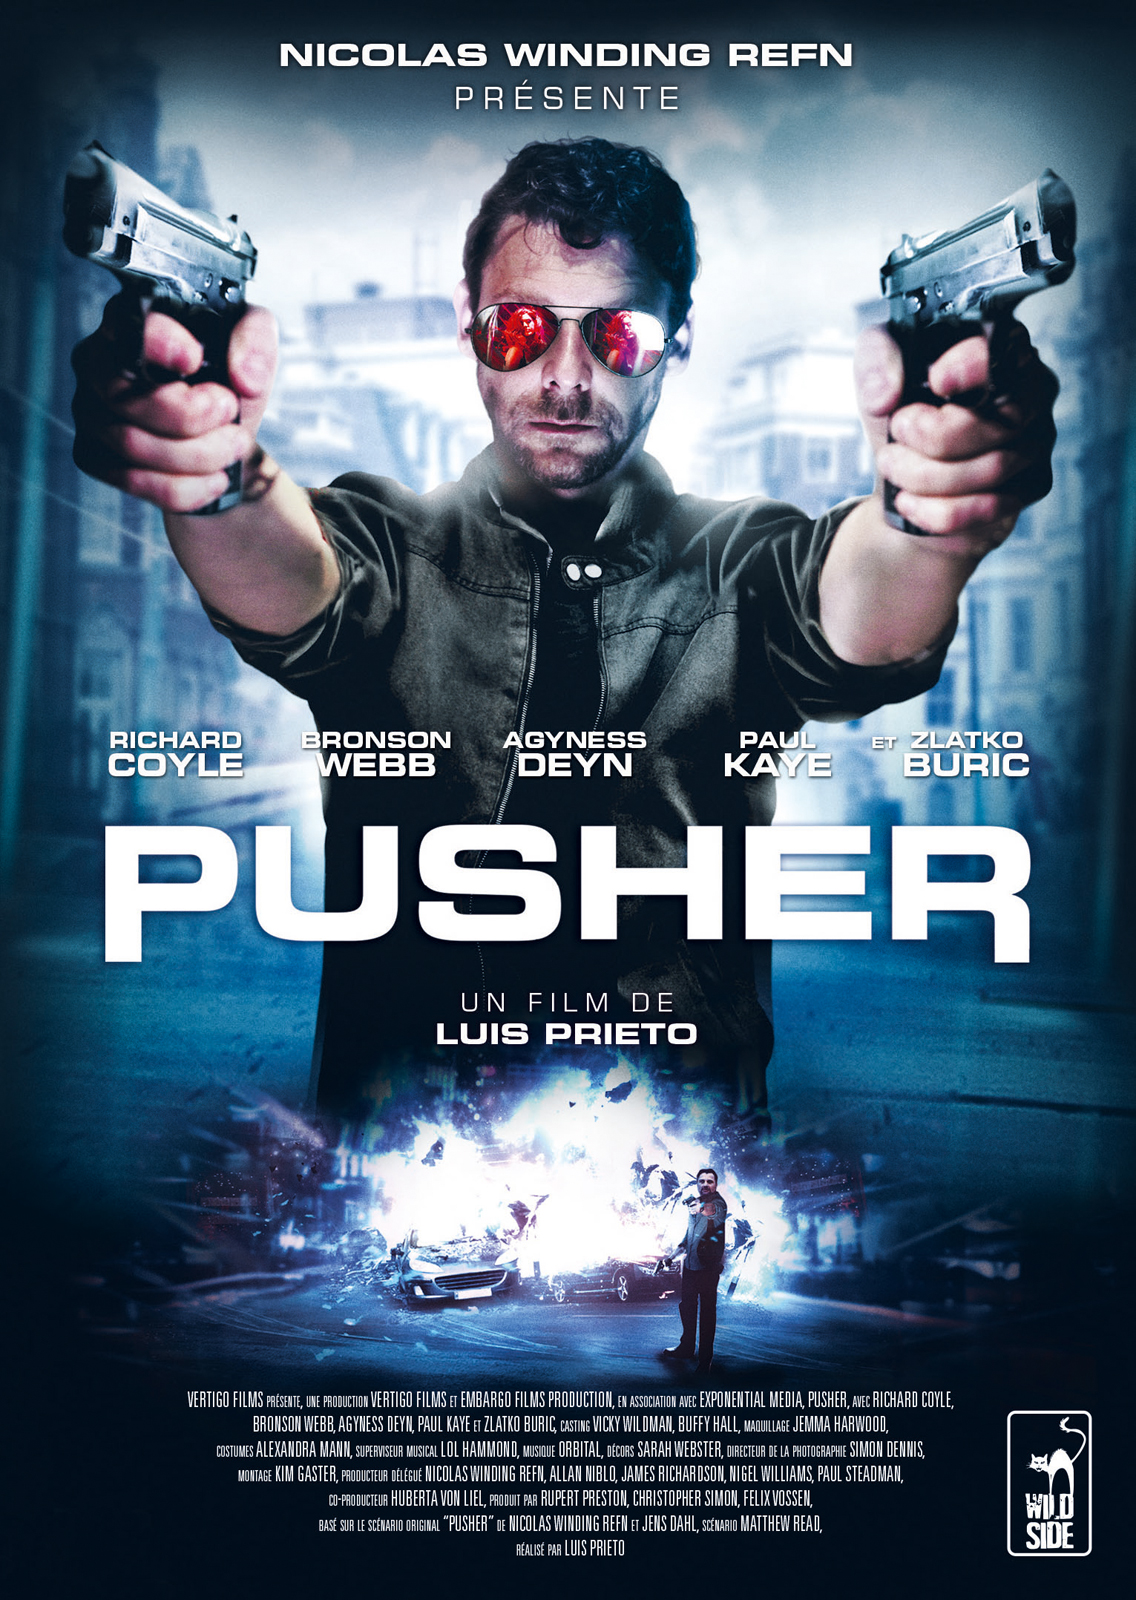 Pusher